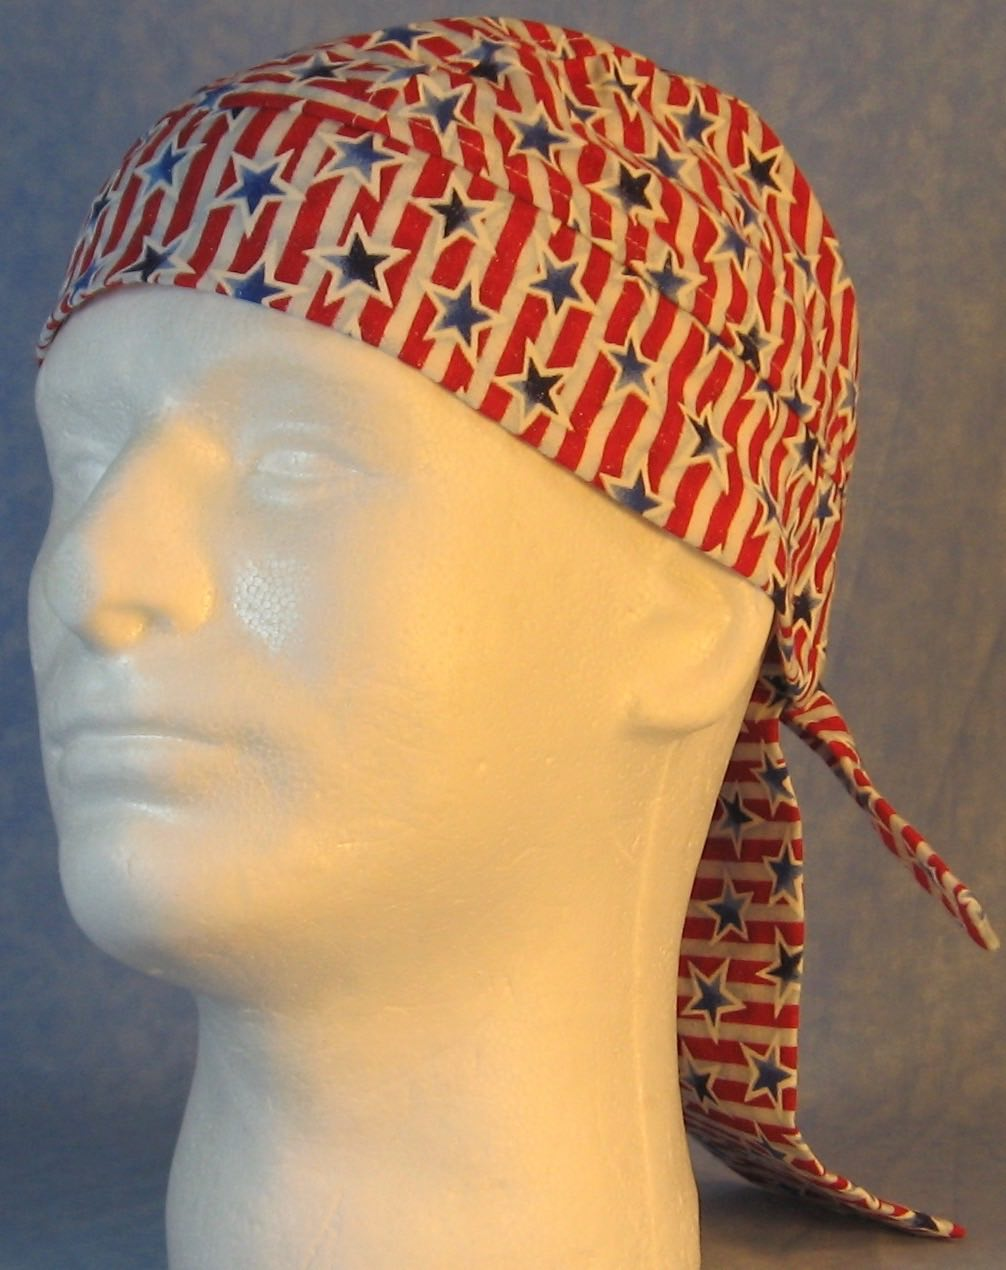 Do Rag in Blue Outlined Stars Red White Stripes-Youth L-XL-Adult S